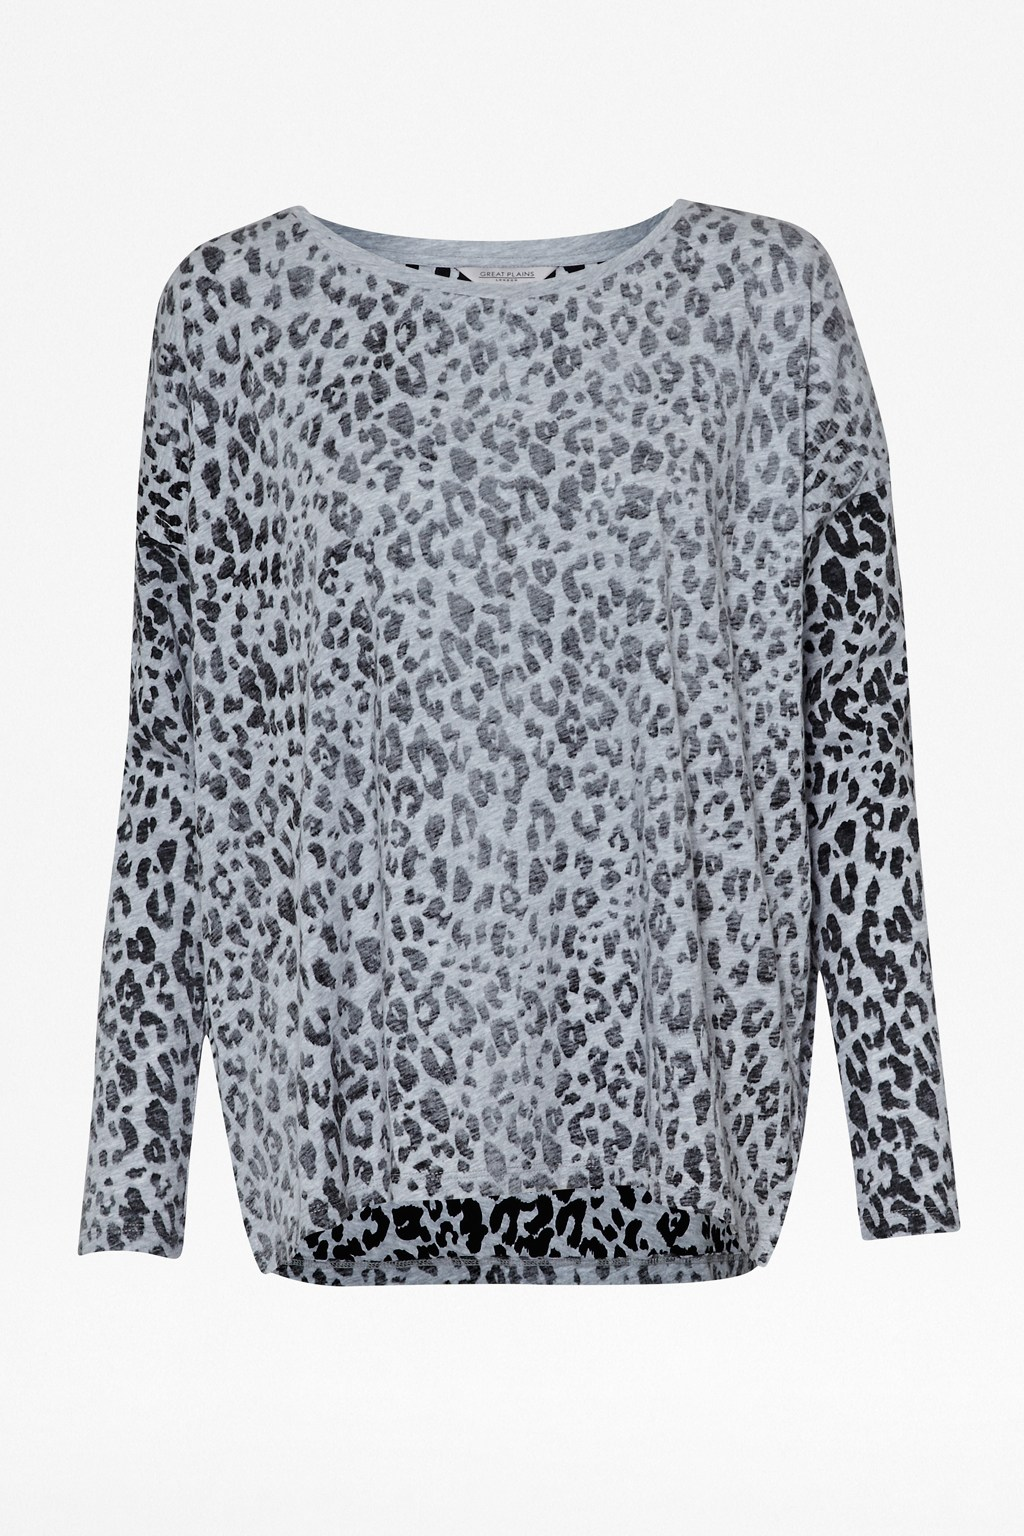 Great Plains Animal Instinct Slouchy Top